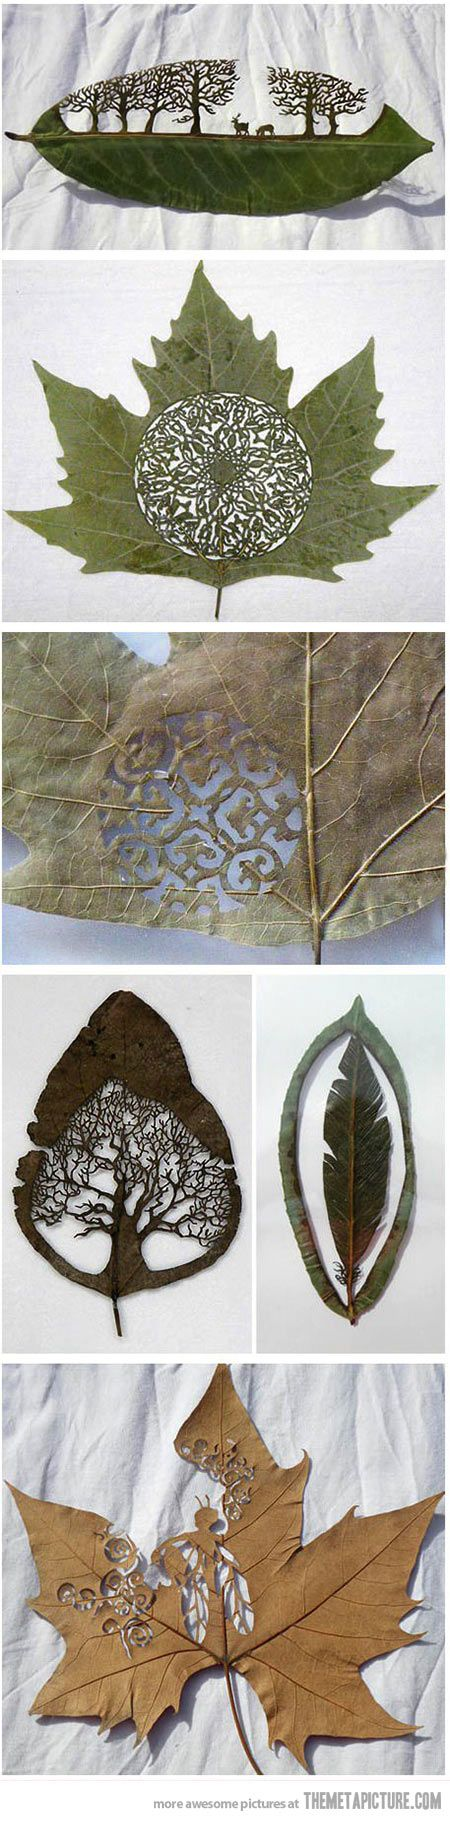 Art in a leaf… impressive